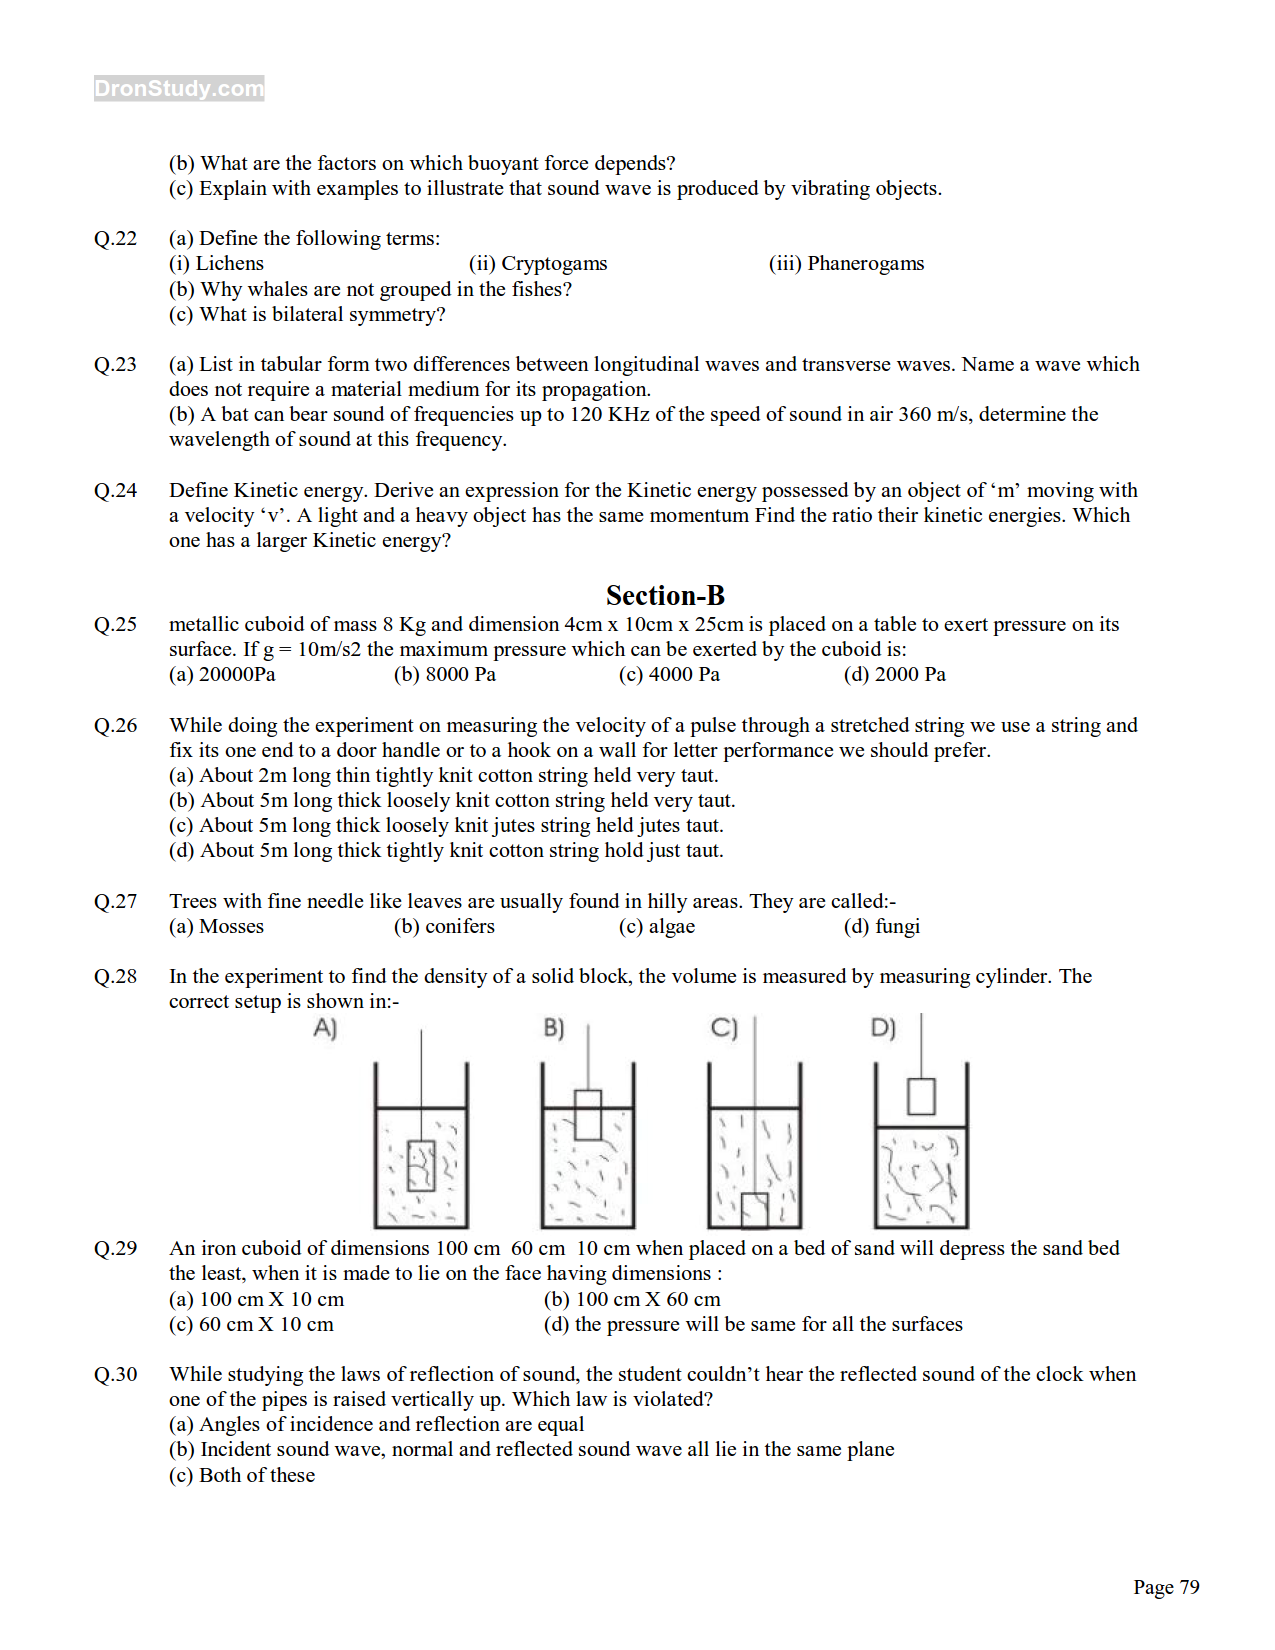 Sample science paper class 9 - ICSE syllabus for class 9